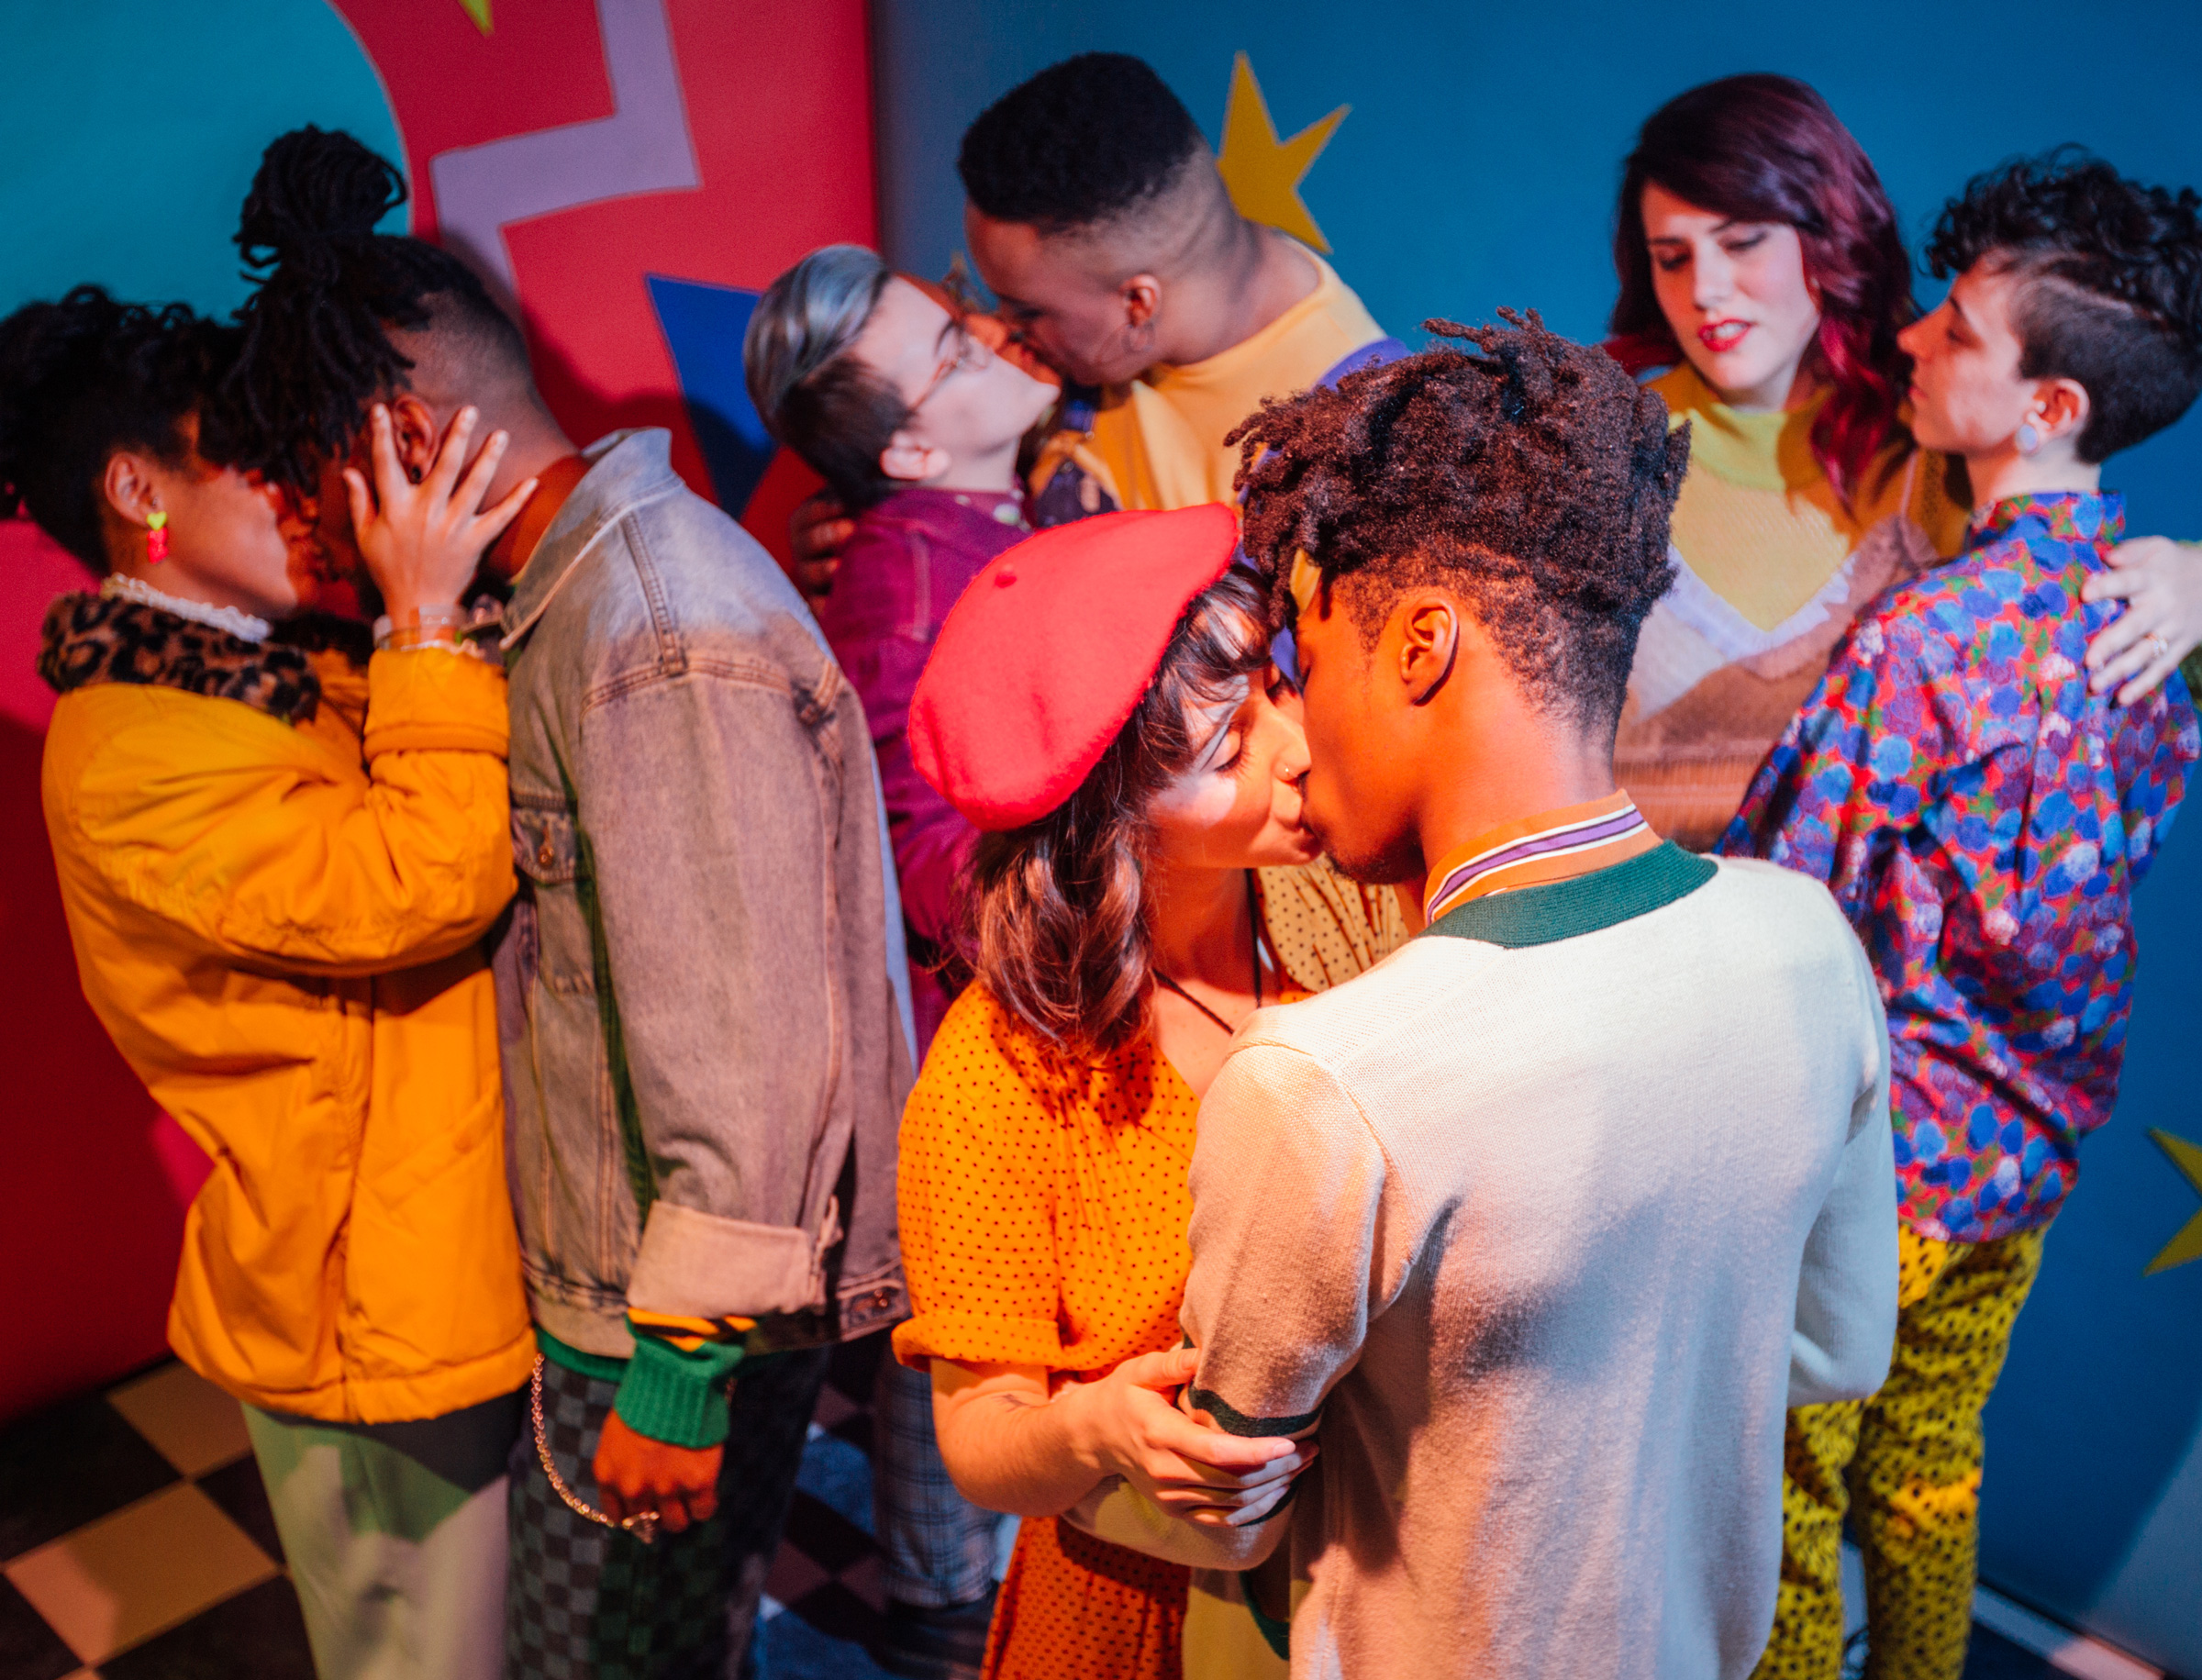 A colorful photo of several couples kissing and being affectionate.